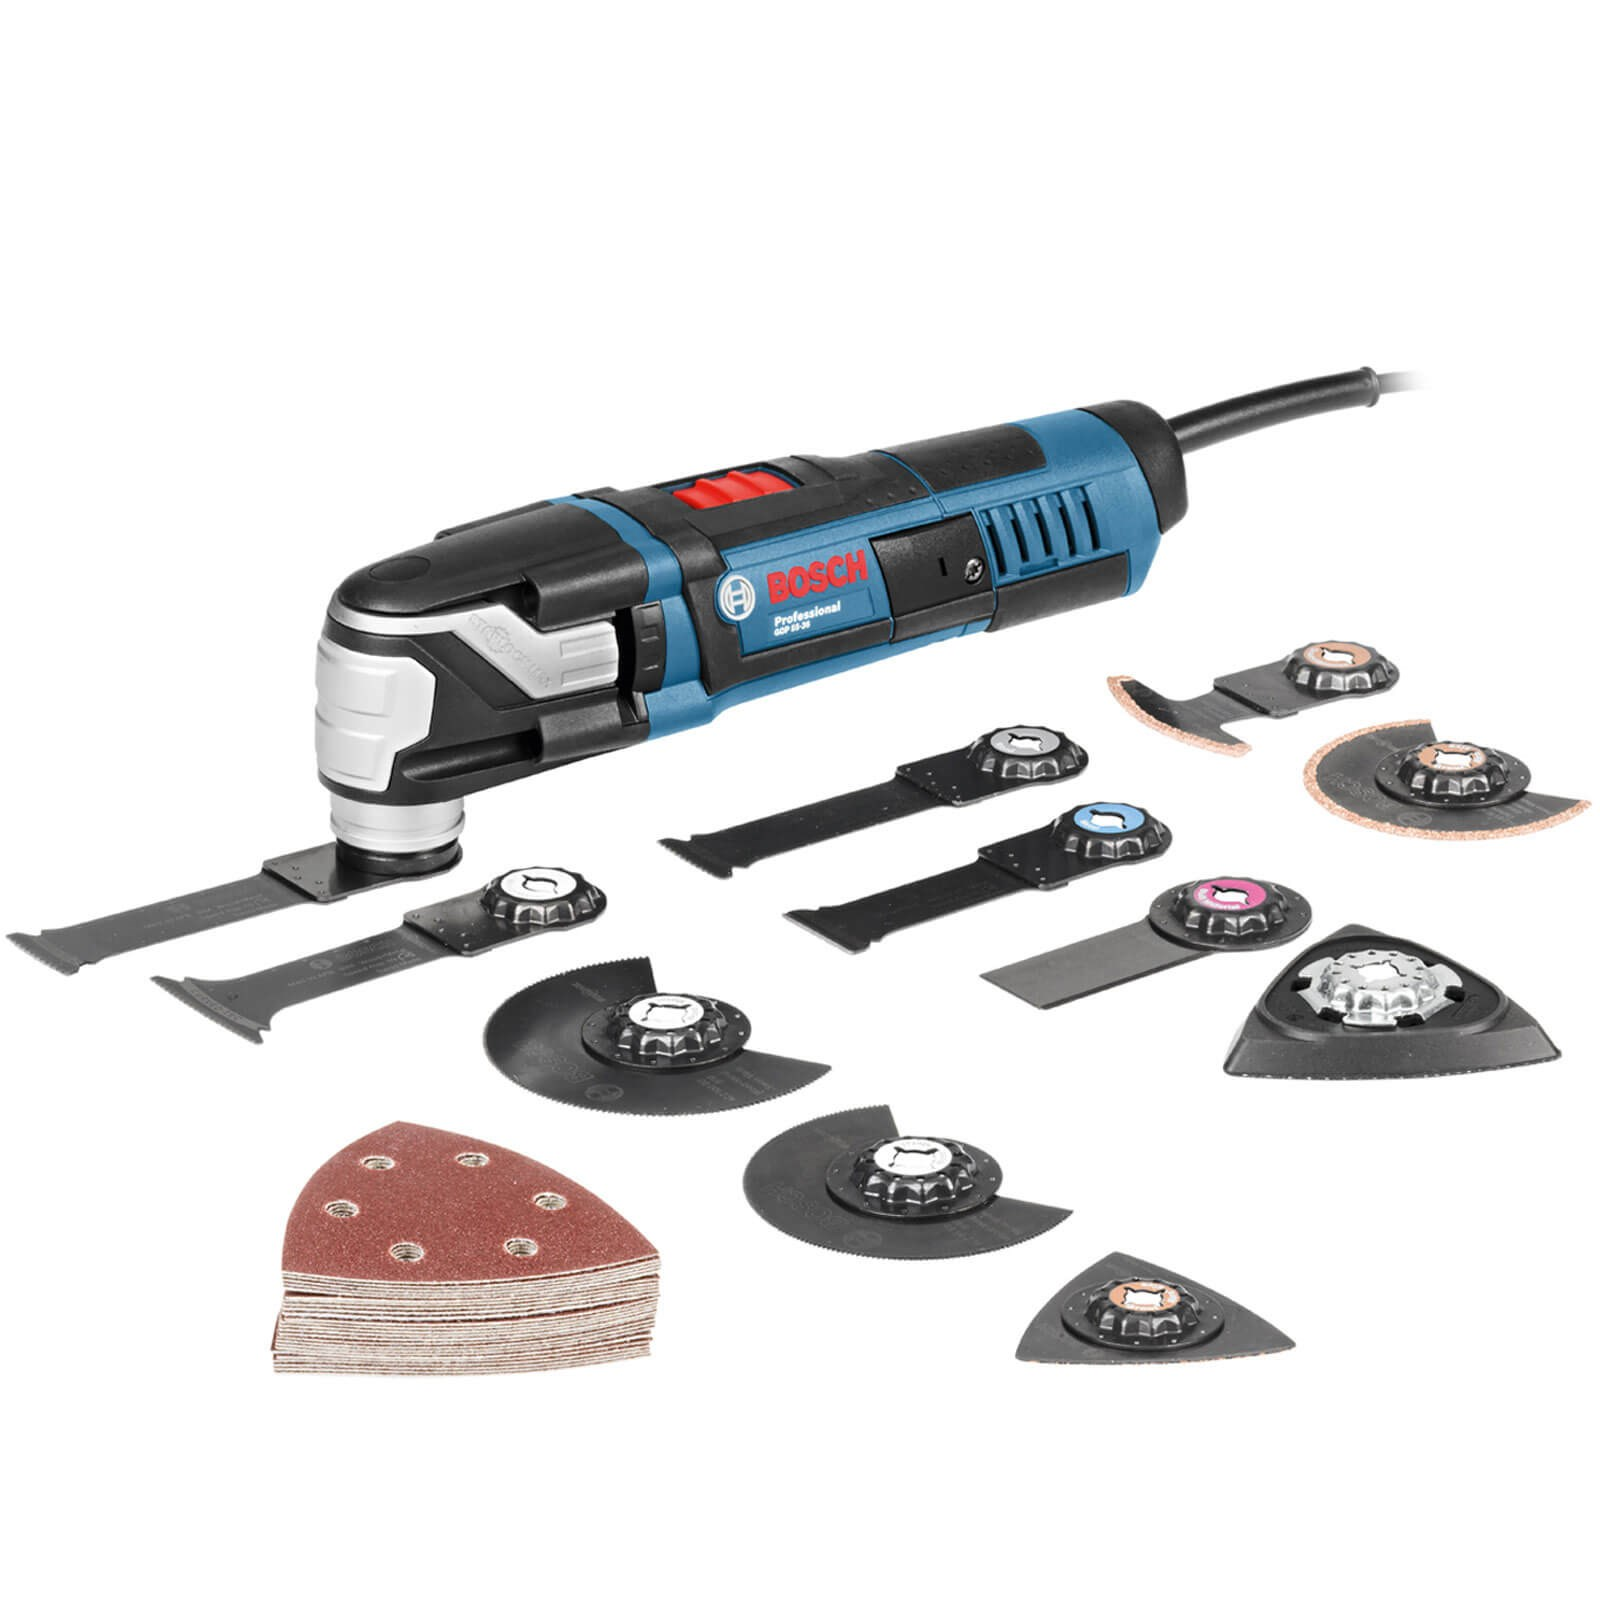 bosch gop 55-36 oscillating multi tool & accessory pack